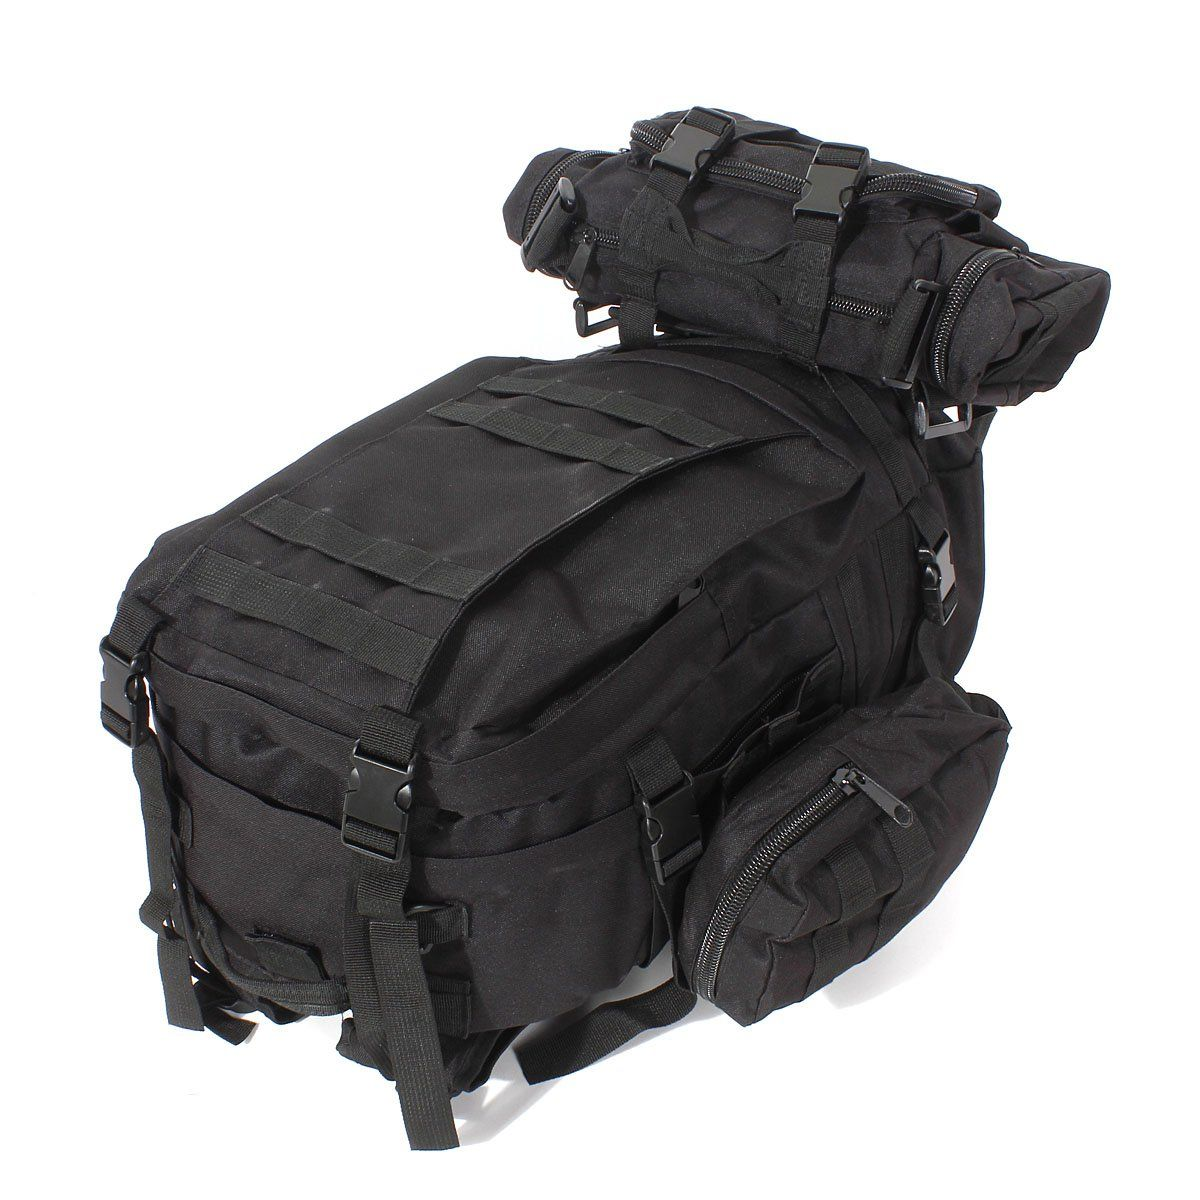 Specification  Material  600D Military nylon MainC ompartment(approx)  51 x  34 x 15cm (H x L x W) Front Pocket(approx)  15 x 34 x 9cm (H x L x W) Side  ... 2ca513dda0d36